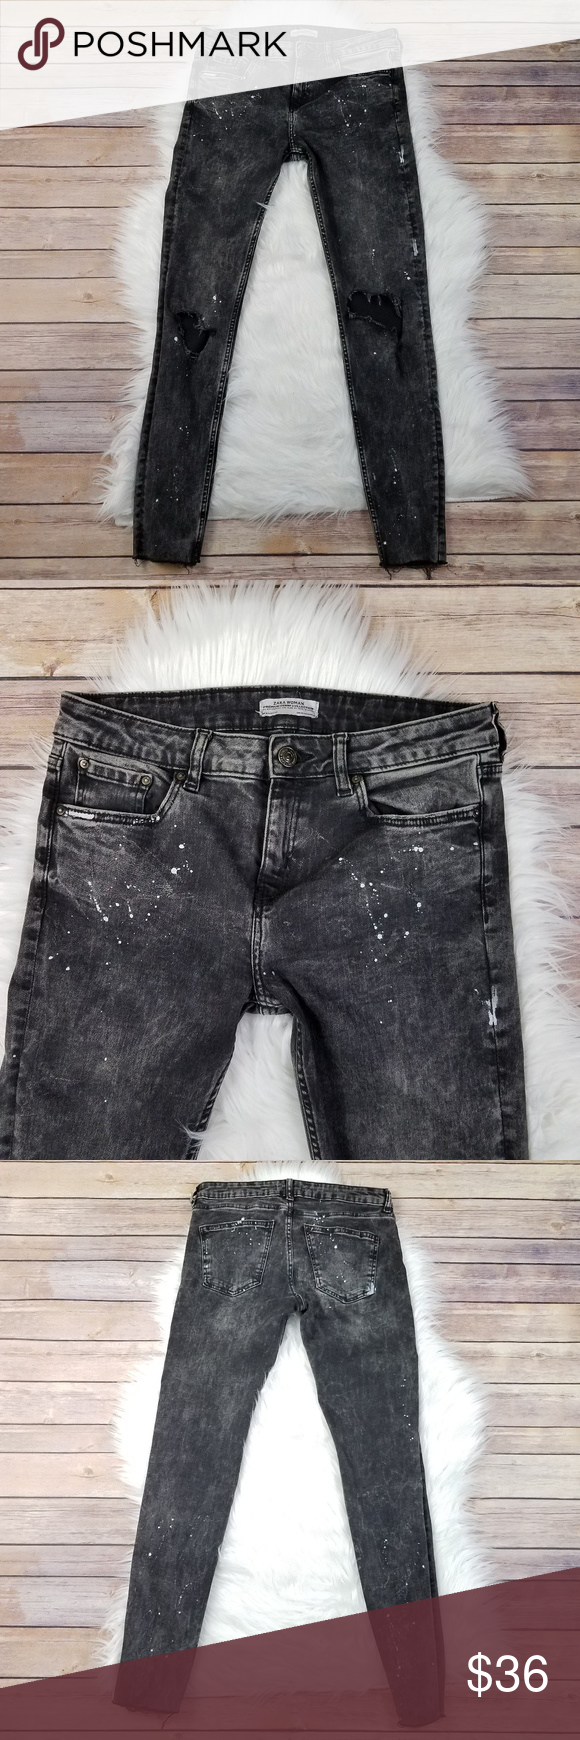 732d5eb065 ZARA Destroyed Paint Splatter Skinny Crop Jeans ZARA High Waisted ...